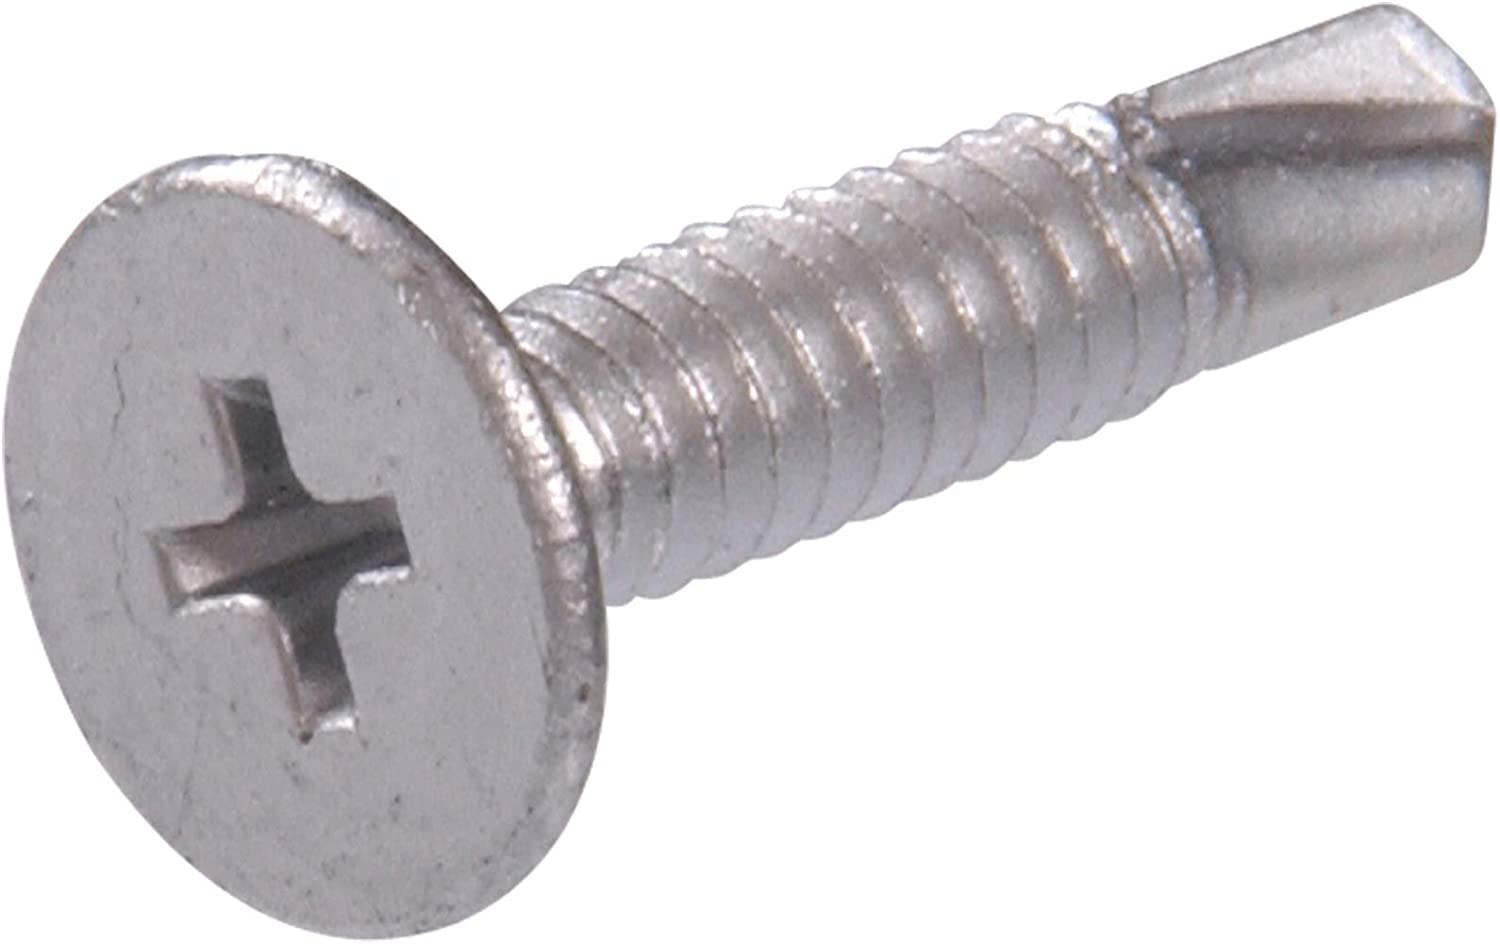 The Hillman Group 560662 10-24-Inch x 1-1/4-Inch Wafer Head Phillips Self Drilling Screw, 100-Pack